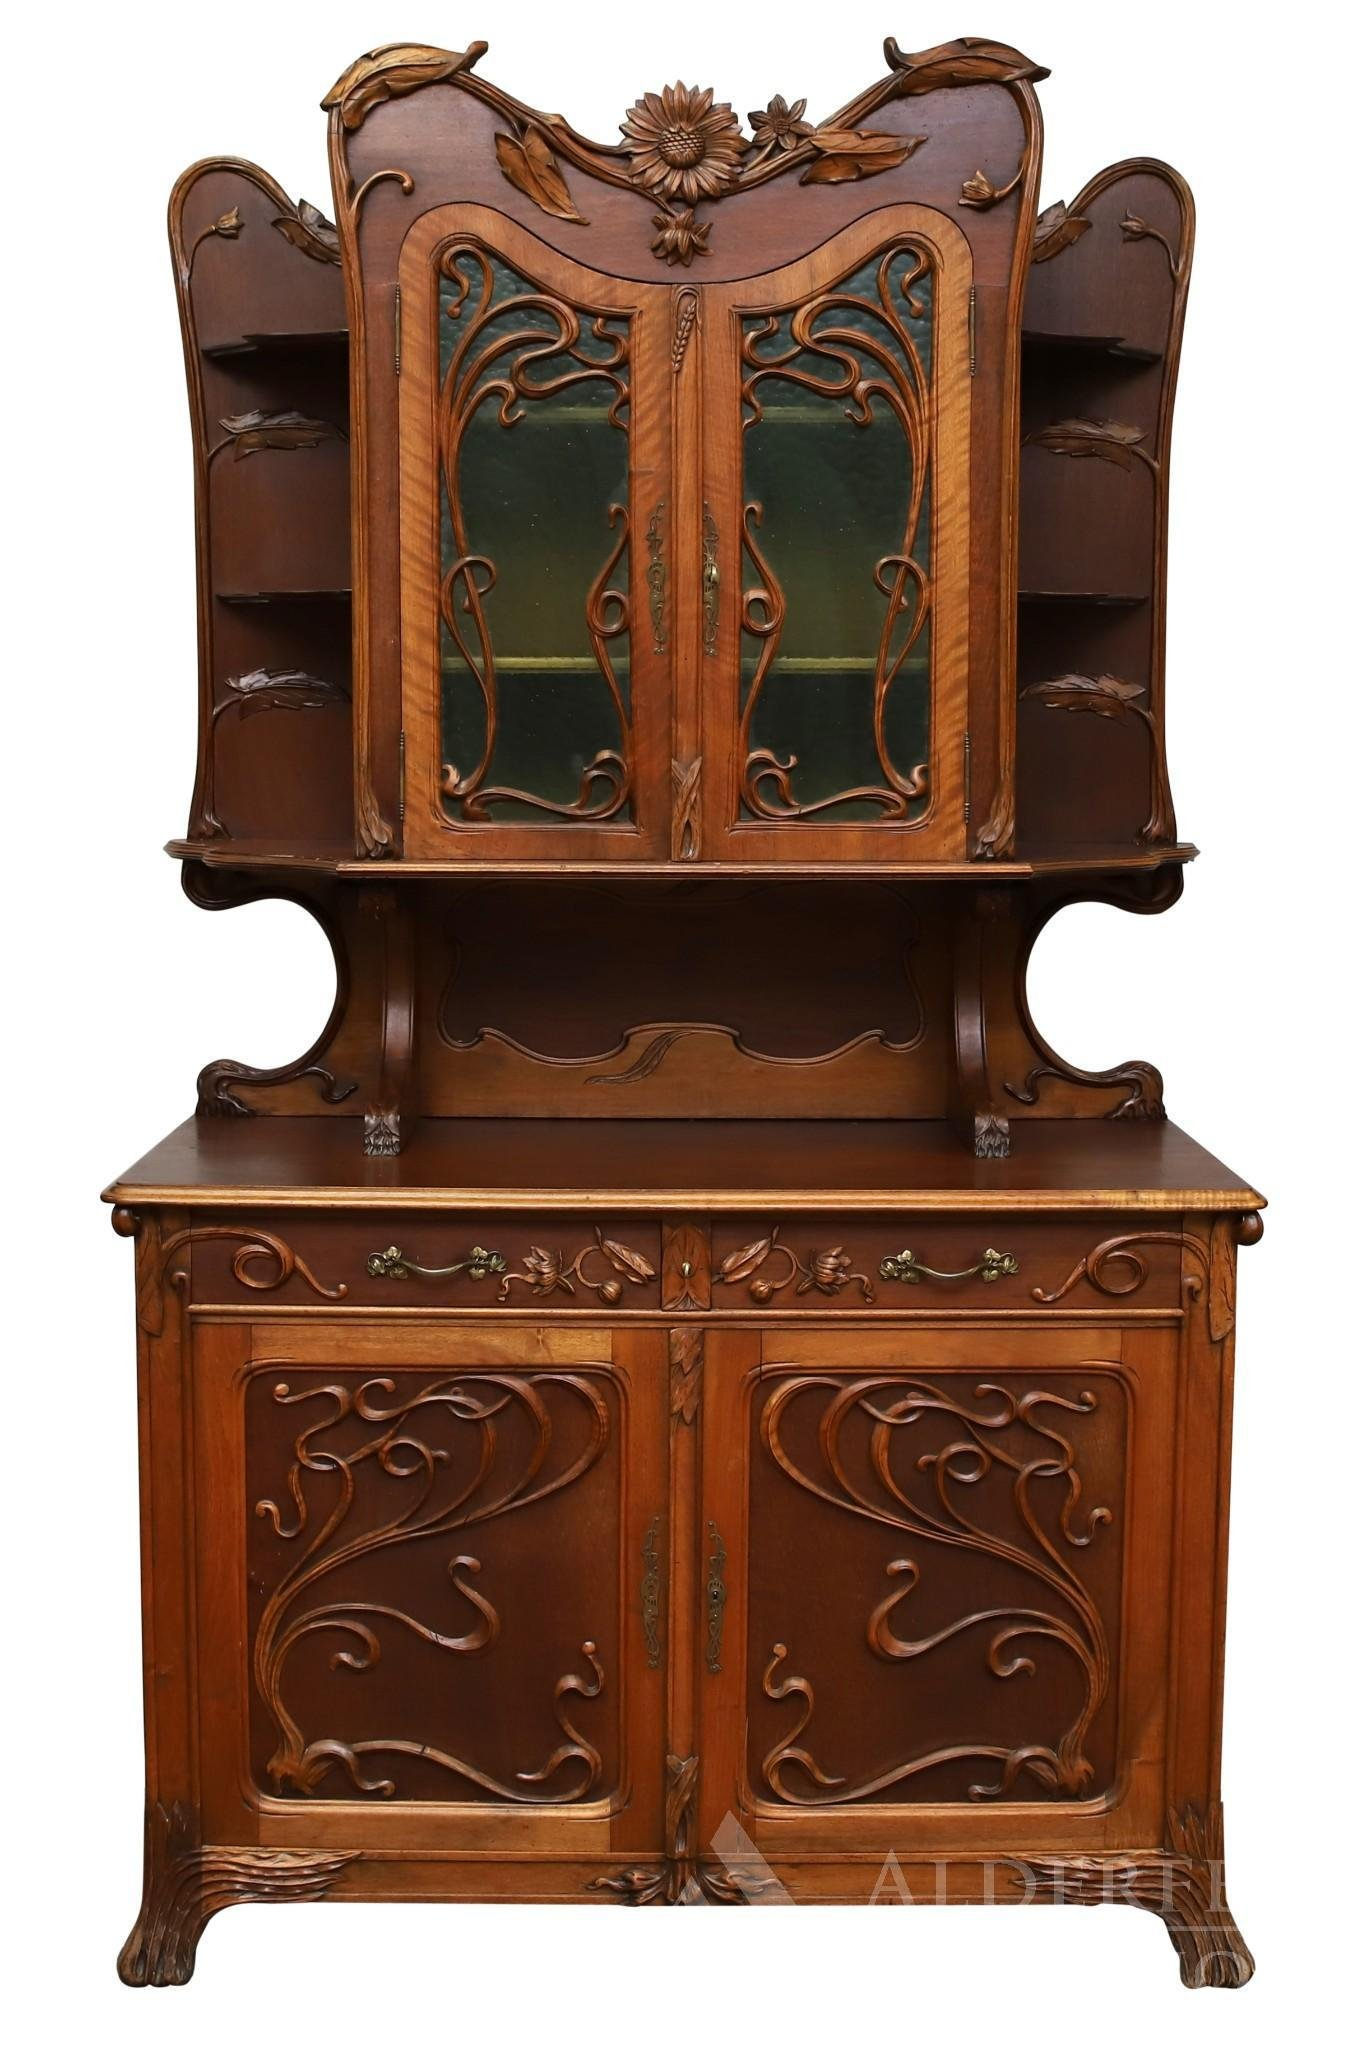 French Art Nouveau Sideboard